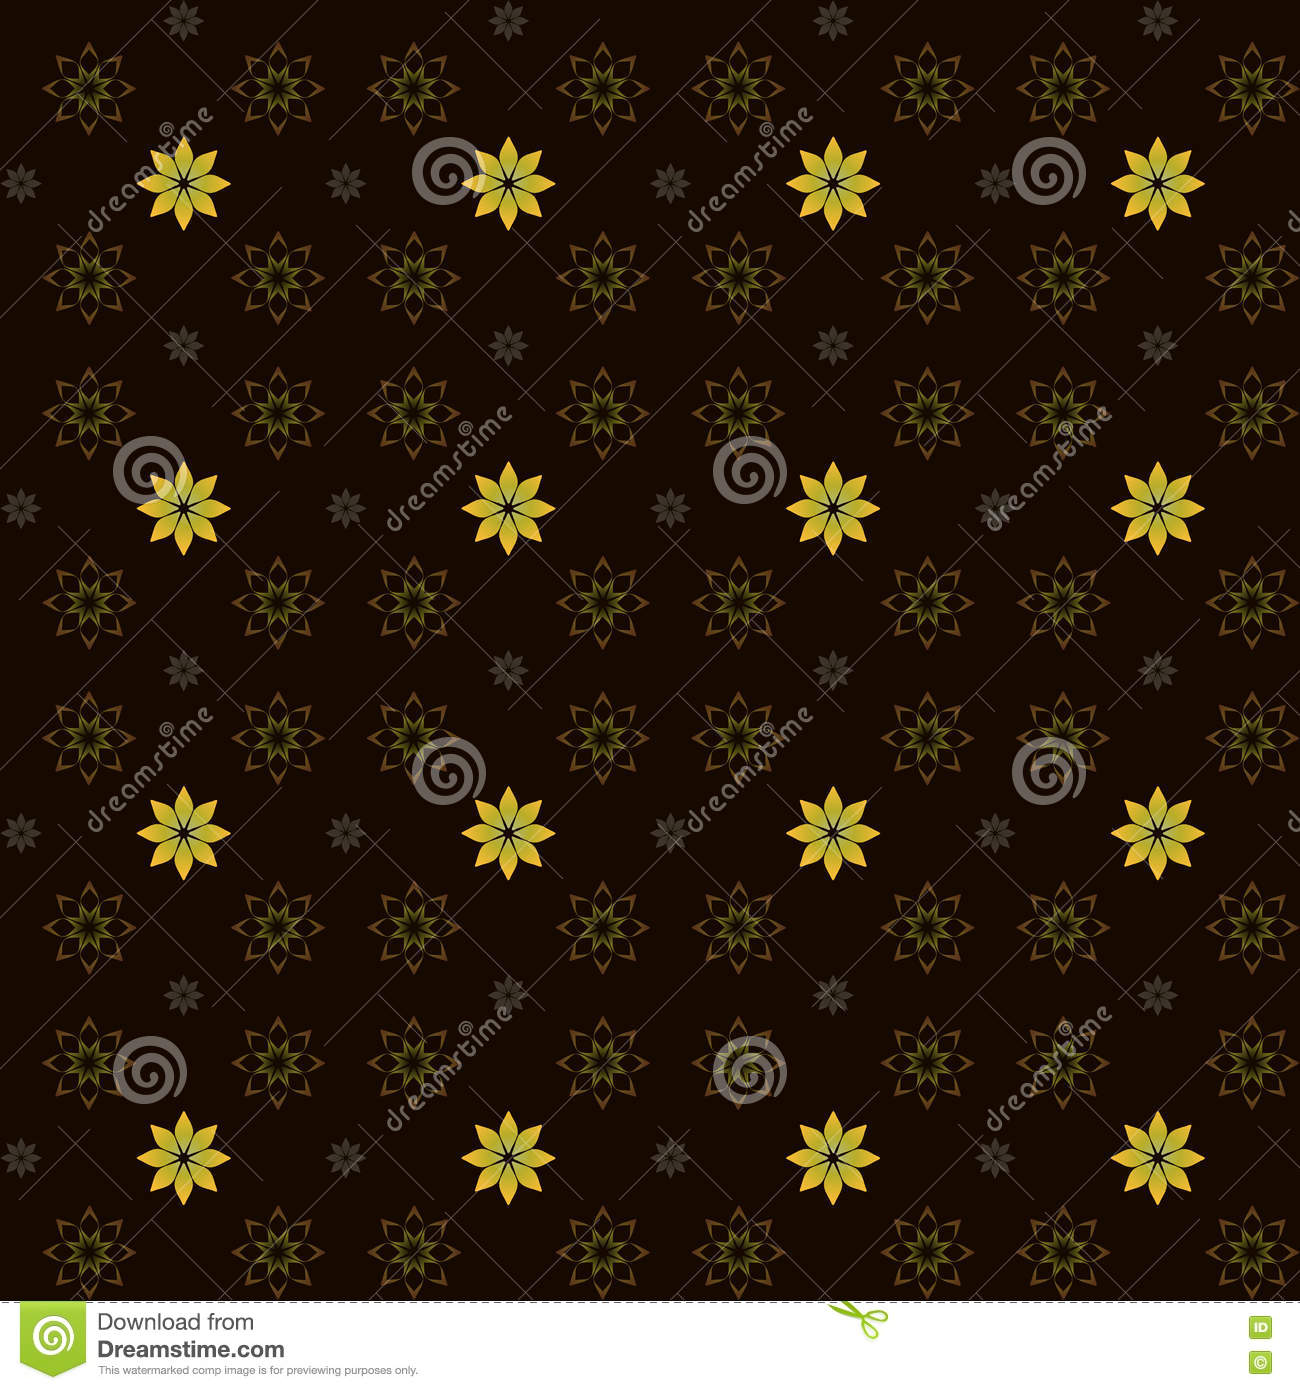 Yellow flowers stock vector illustration of design graphics 71865677 illustration made by three kinds of yellow flowers on the brown background mightylinksfo